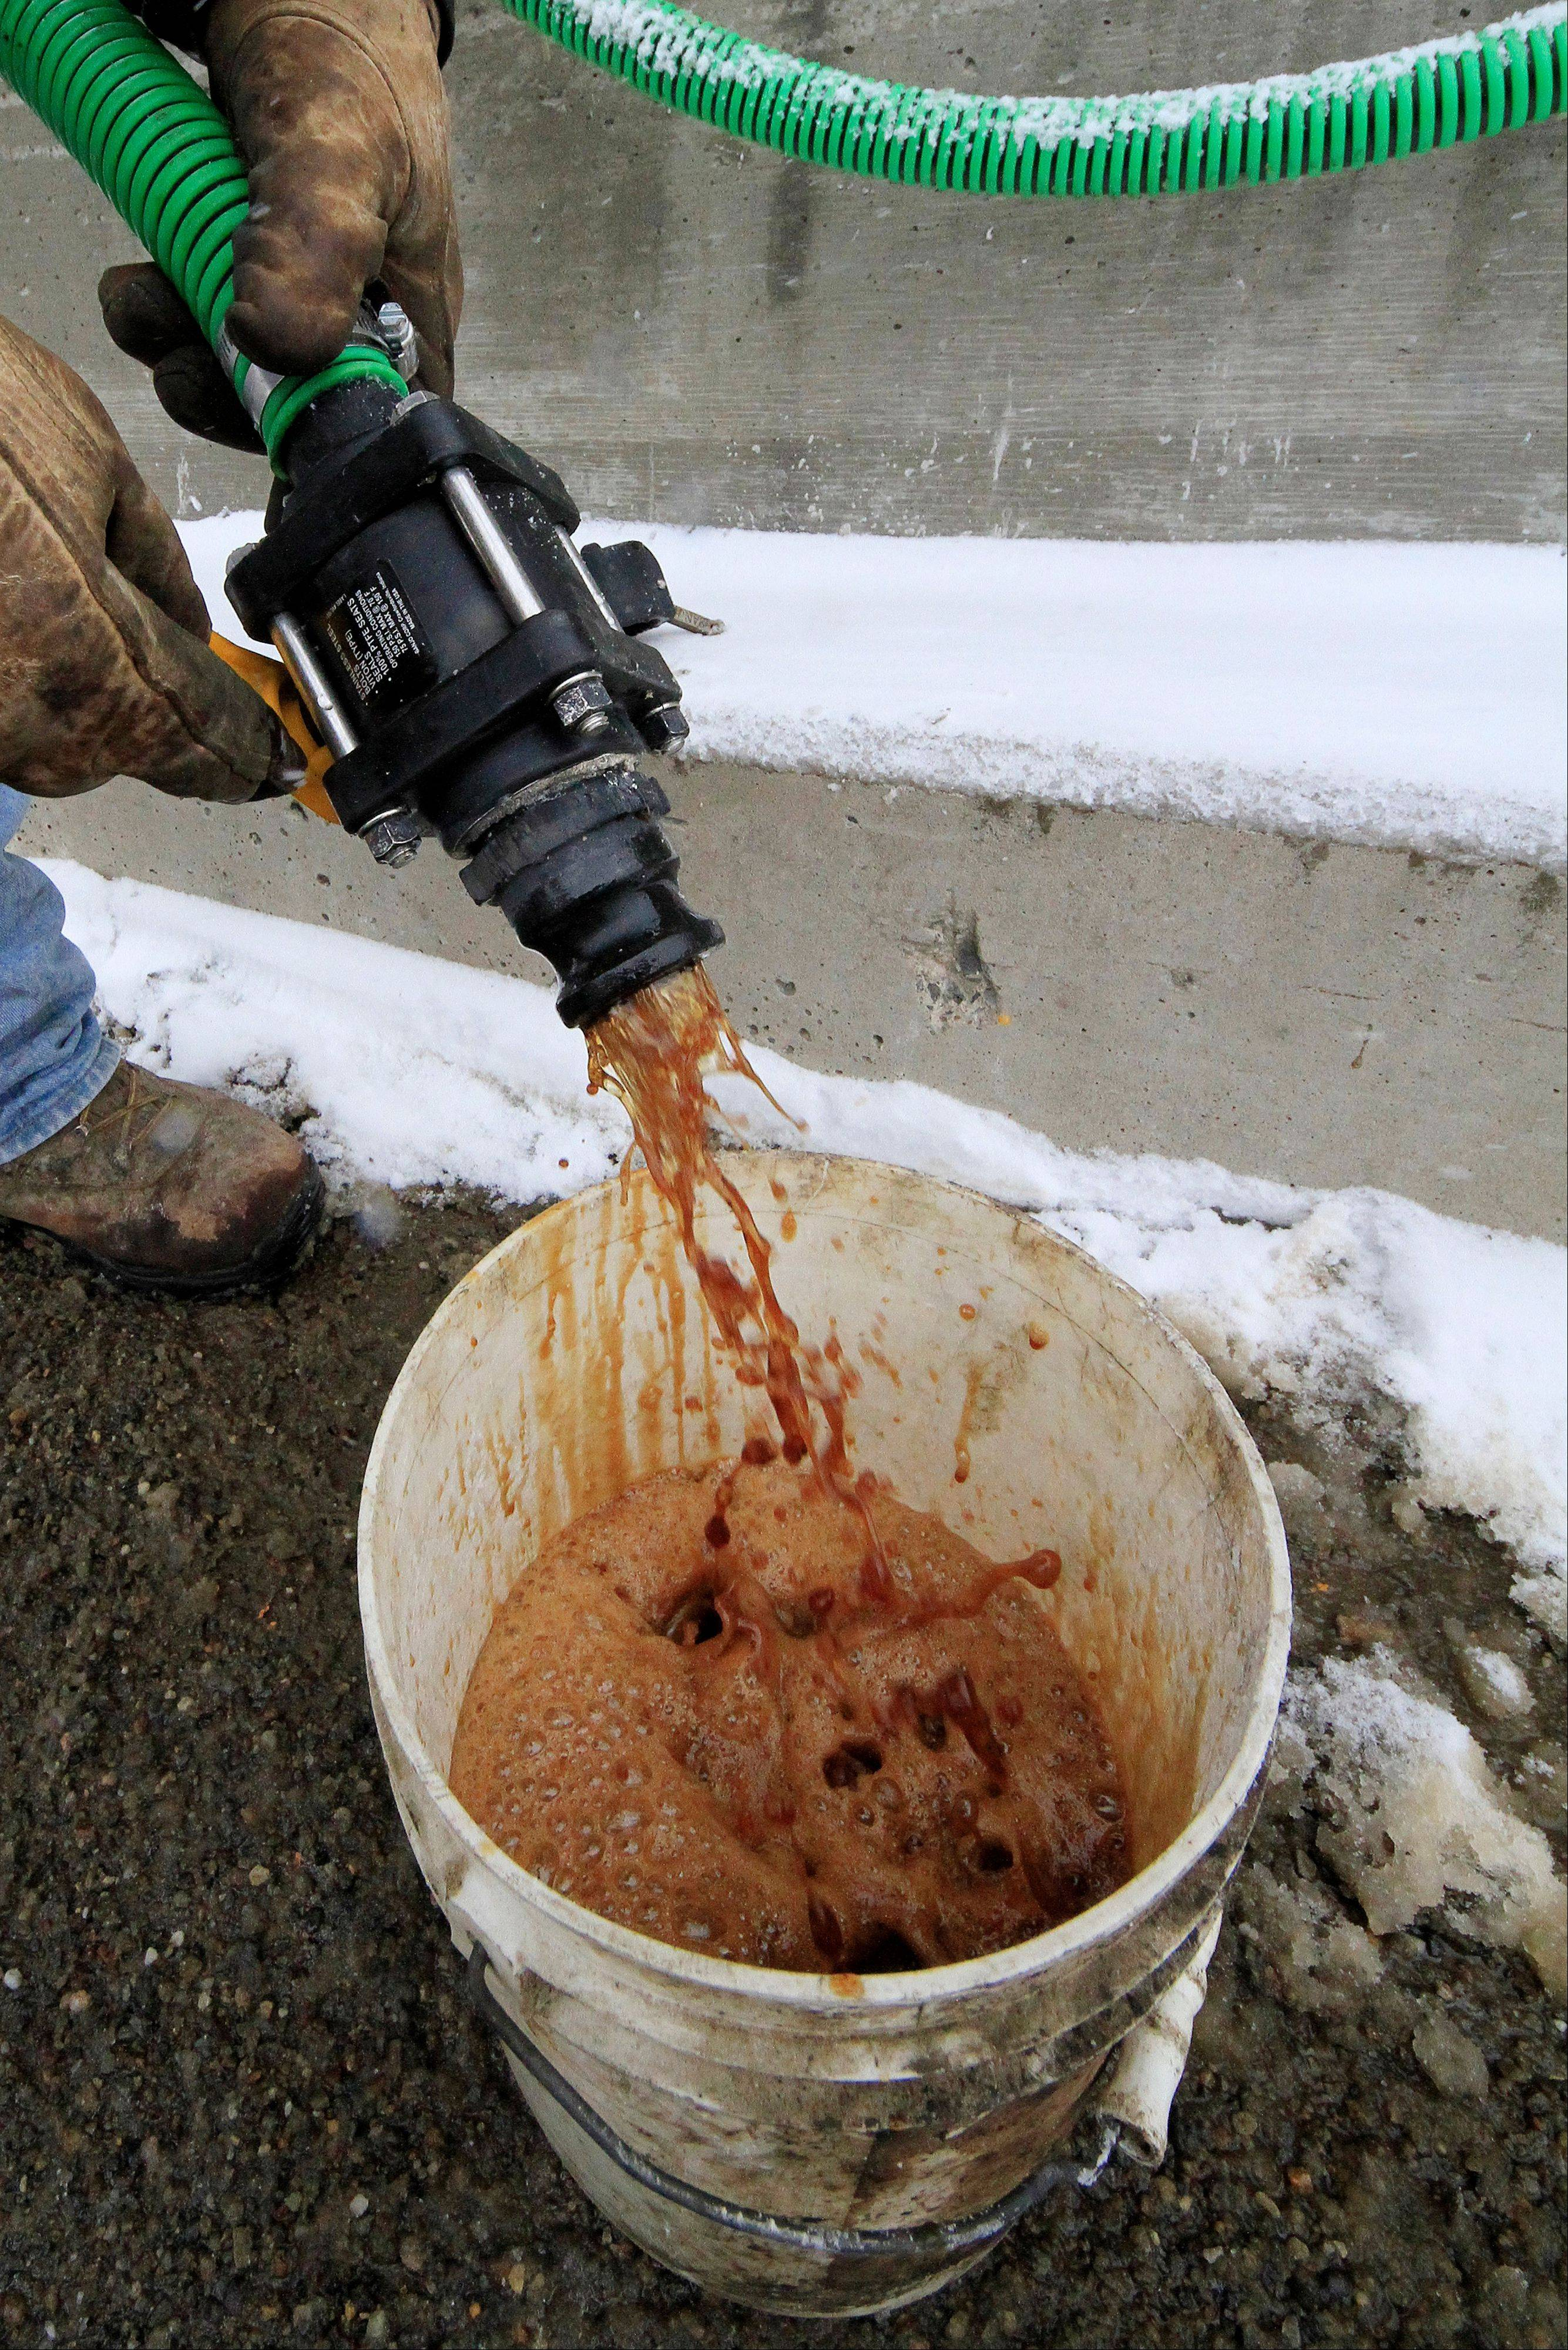 In a demonstration, a bucket is filled with beet juice at the Pennsylvania Department of Transportation's Butler, Pa., maintenance facility, Monday. Because rock salt is largely ineffective below 16 degrees, road salt is mixed with additives, such as beet juice and cheese brine, to keep it working in temperatures as low as minus 25.